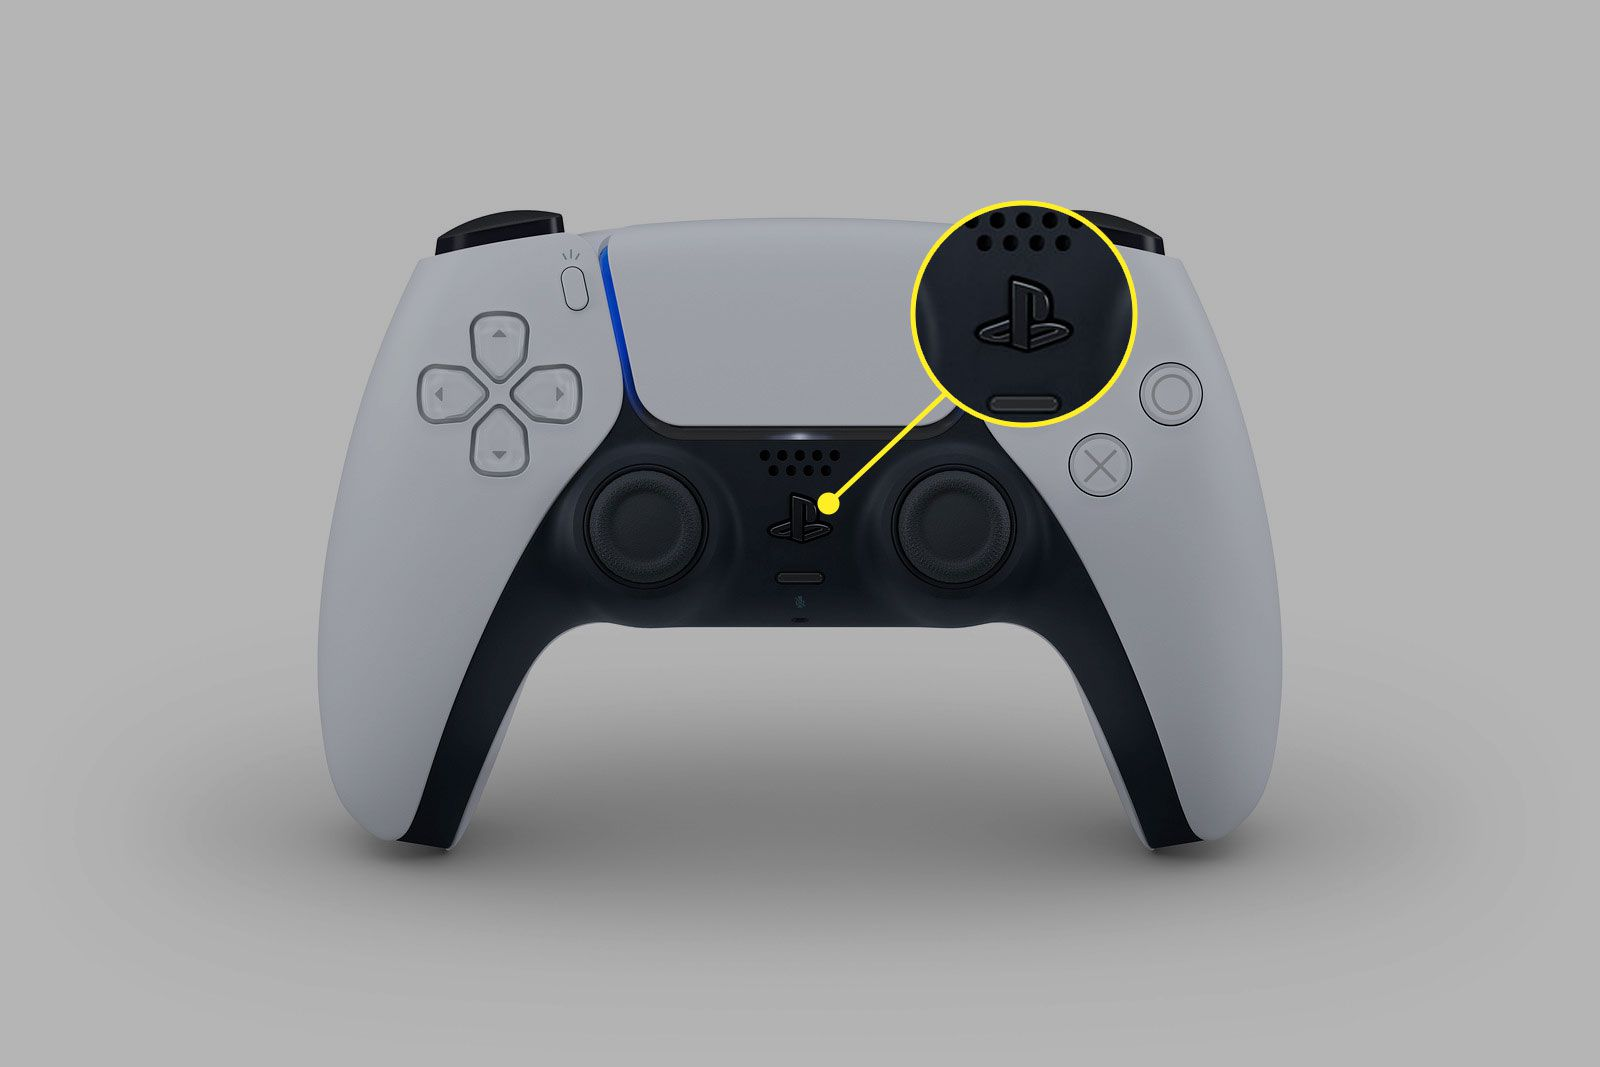 The PS button on the PlayStation 5 DualSense controller